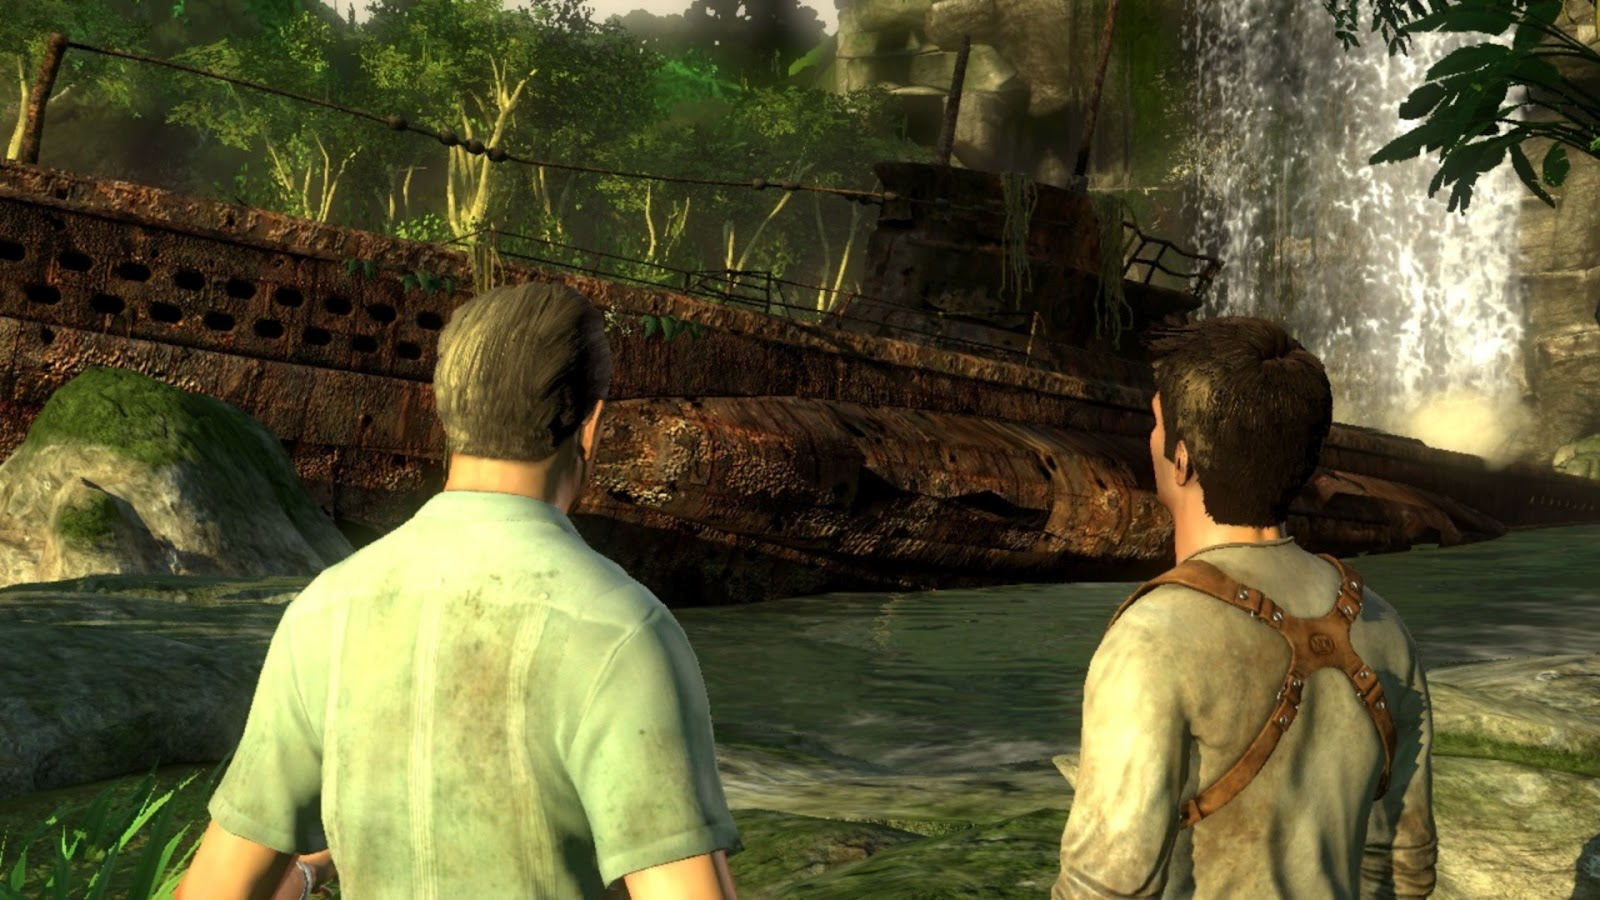 wallpapers+4 Uncharted...